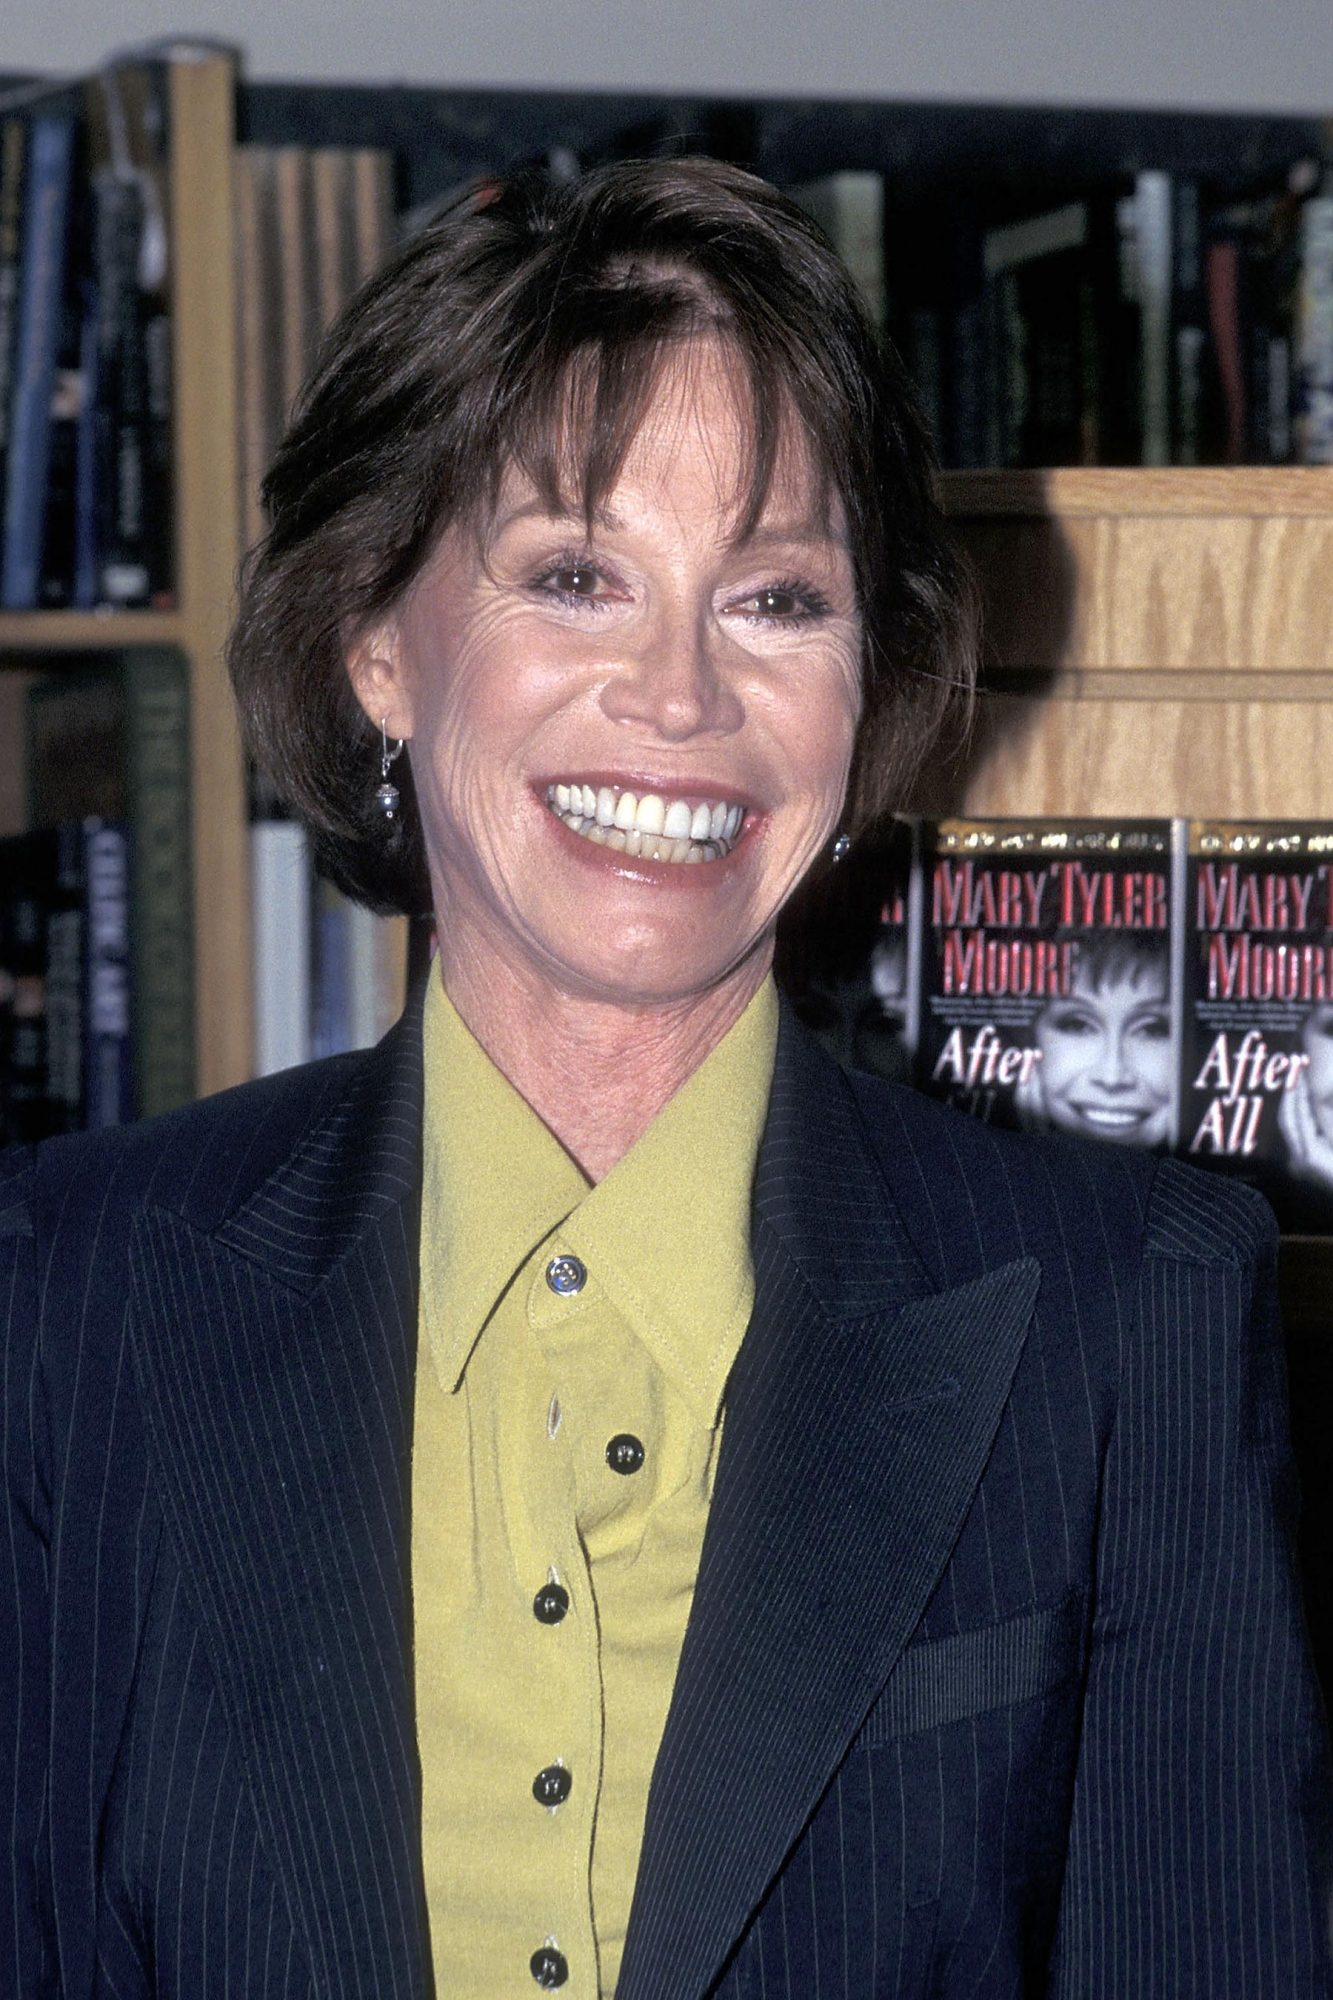 """Mary Tyler Moore Autographs Copies of Her New Book """"After All"""""""